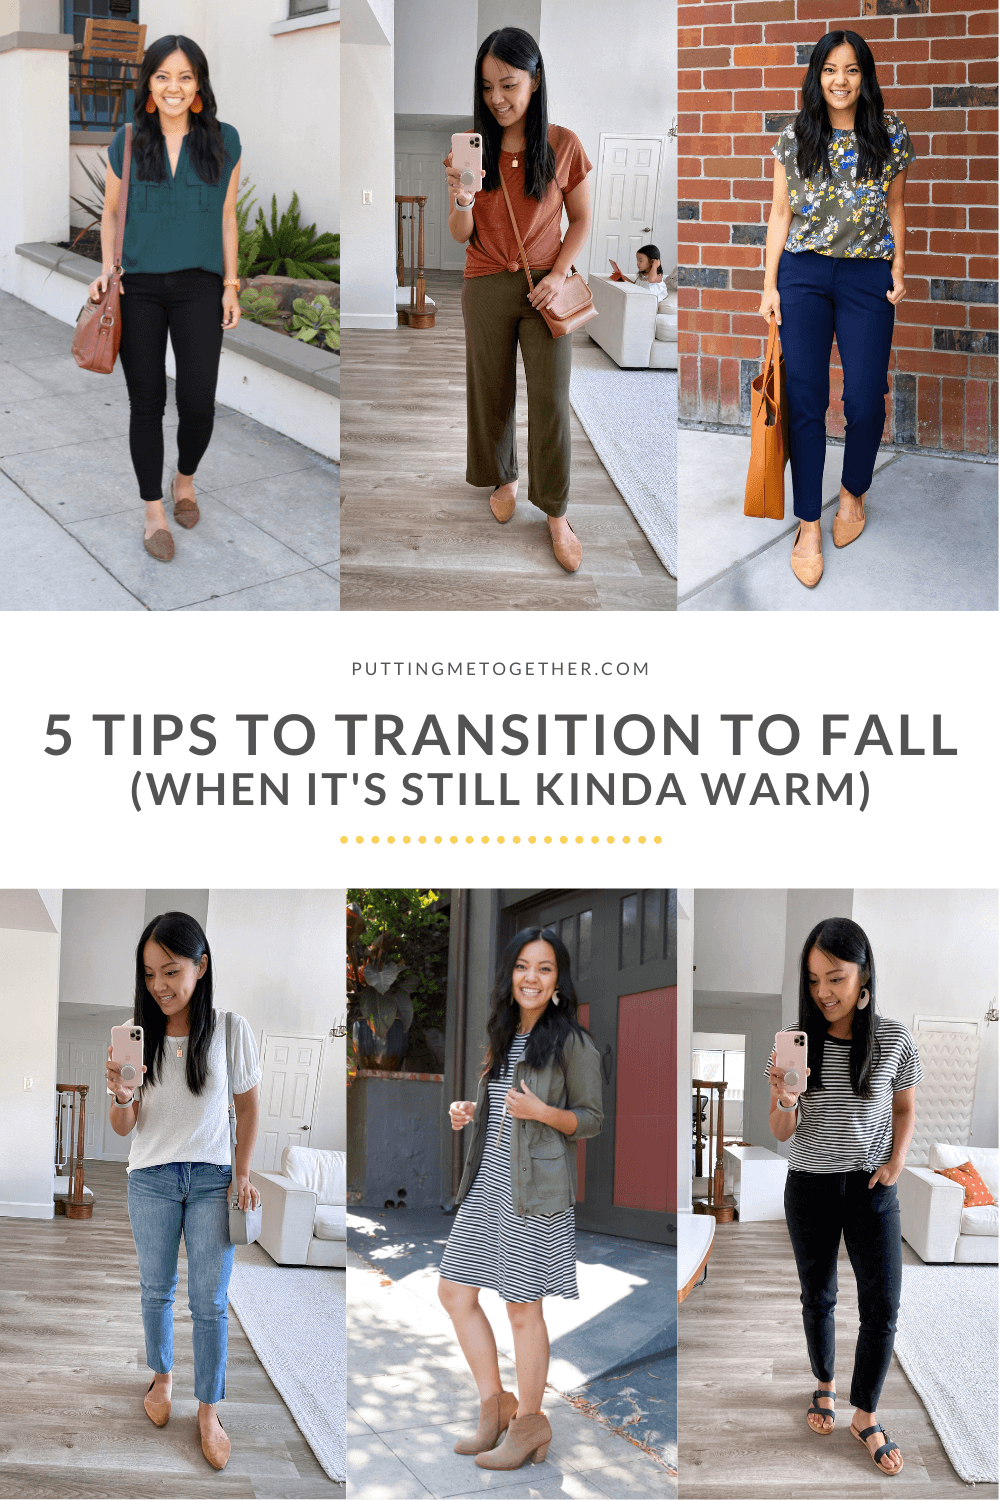 5 Tips to Transition from Summer to Fall Style